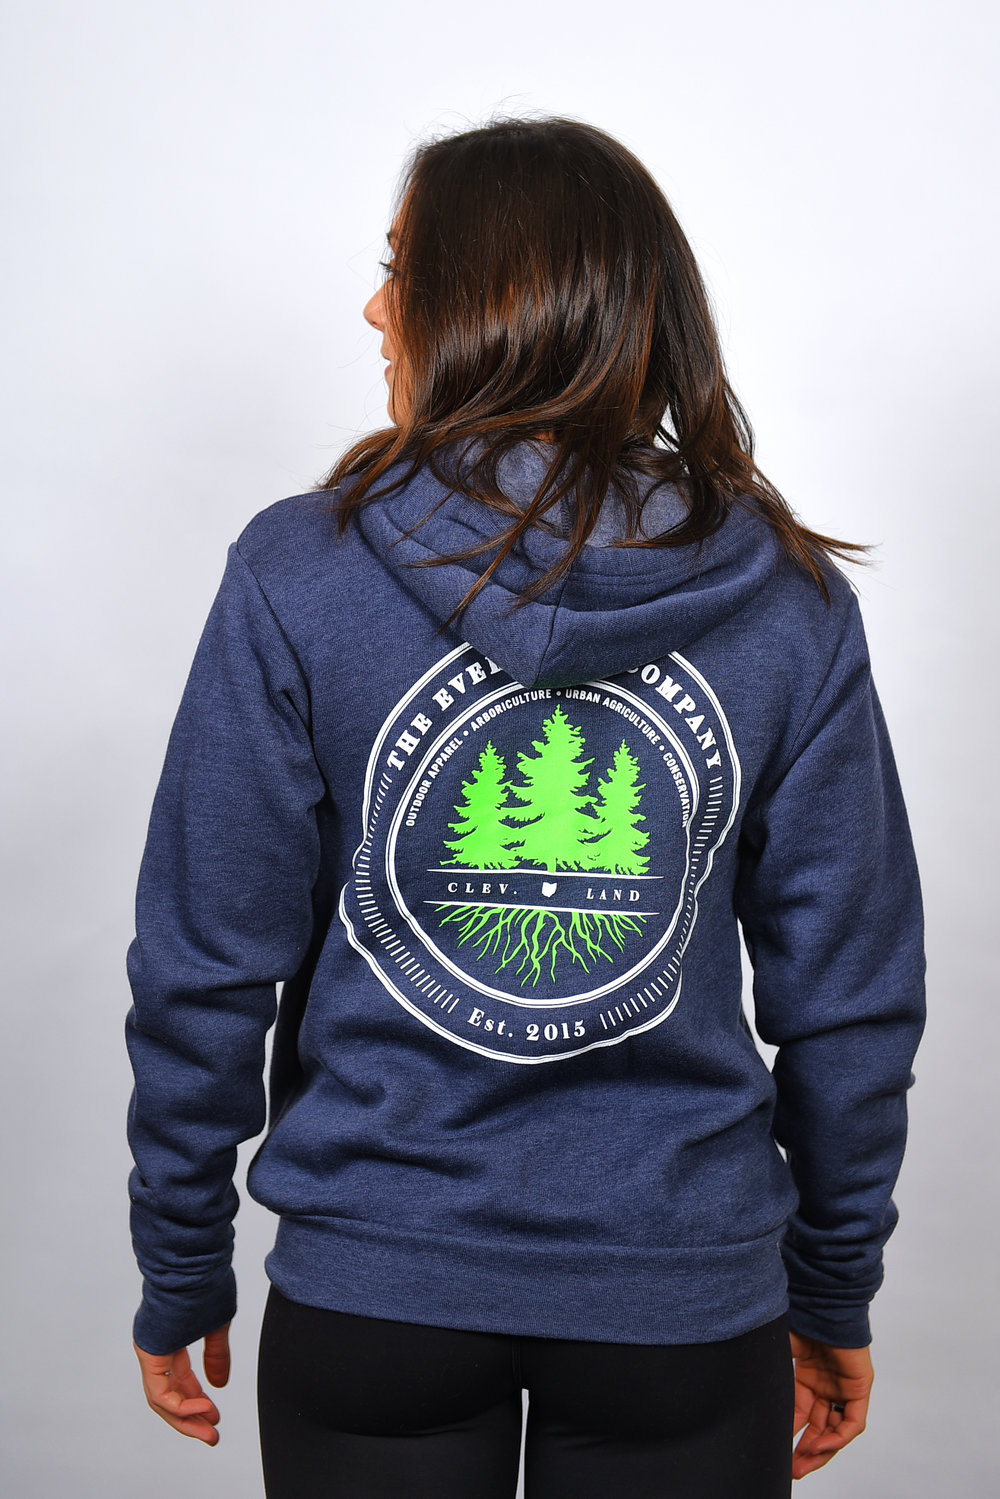 EVERARBOR_BRANDING_2019_KB0199.jpg